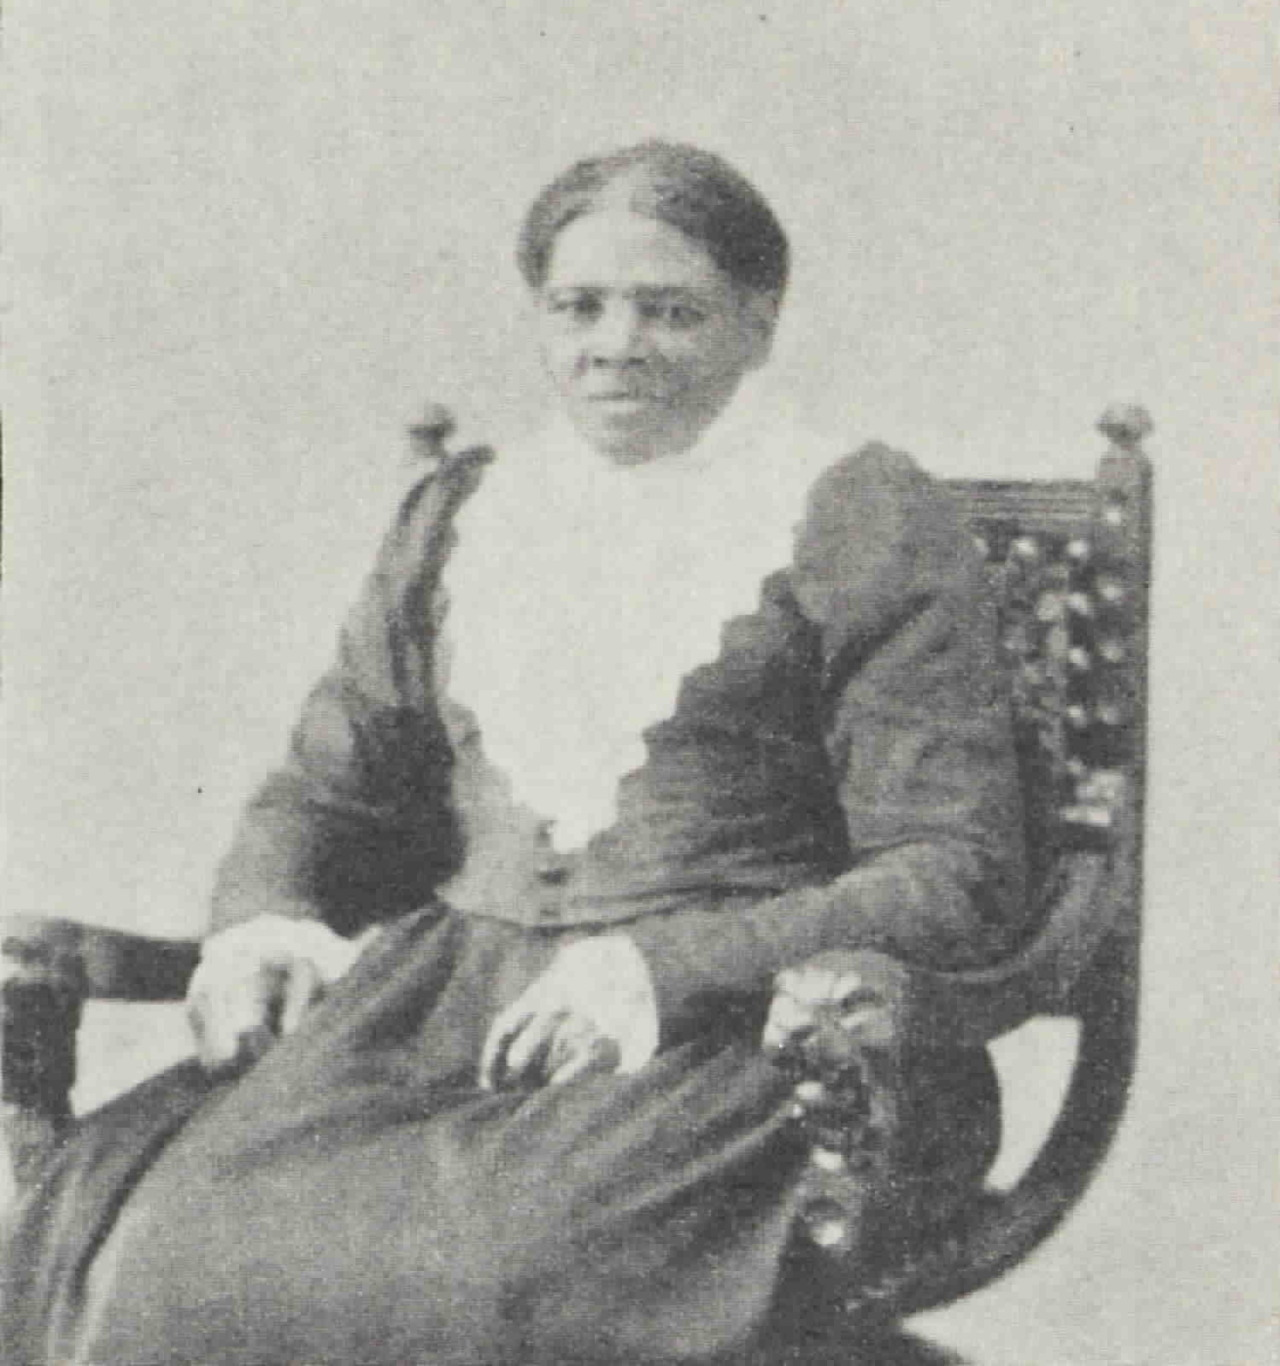 "Name: Harriet TubmanDates: 1820-1913Why she rocks: She was an abolitionist, humanitarian, and Union spy during the Civil War. After escaping slavery, she made 13 missions back over the borders to rescue more than 70 slaves on the Underground Railroad. She was never caught. When the Civil War began, she fought for the army, first as a nurse and cook and then later as an armed scout and spy. She guided the Combahee River Raid which freed over 700 slaves. She retired in New York, but kept doing work in aiding women's suffrage until her death in 1913.Quote: ""I freed a thousand slaves I could have freed a thousand more if only they knew they were slaves"" Because of this woman… thousands of slaves were freed in the south!"